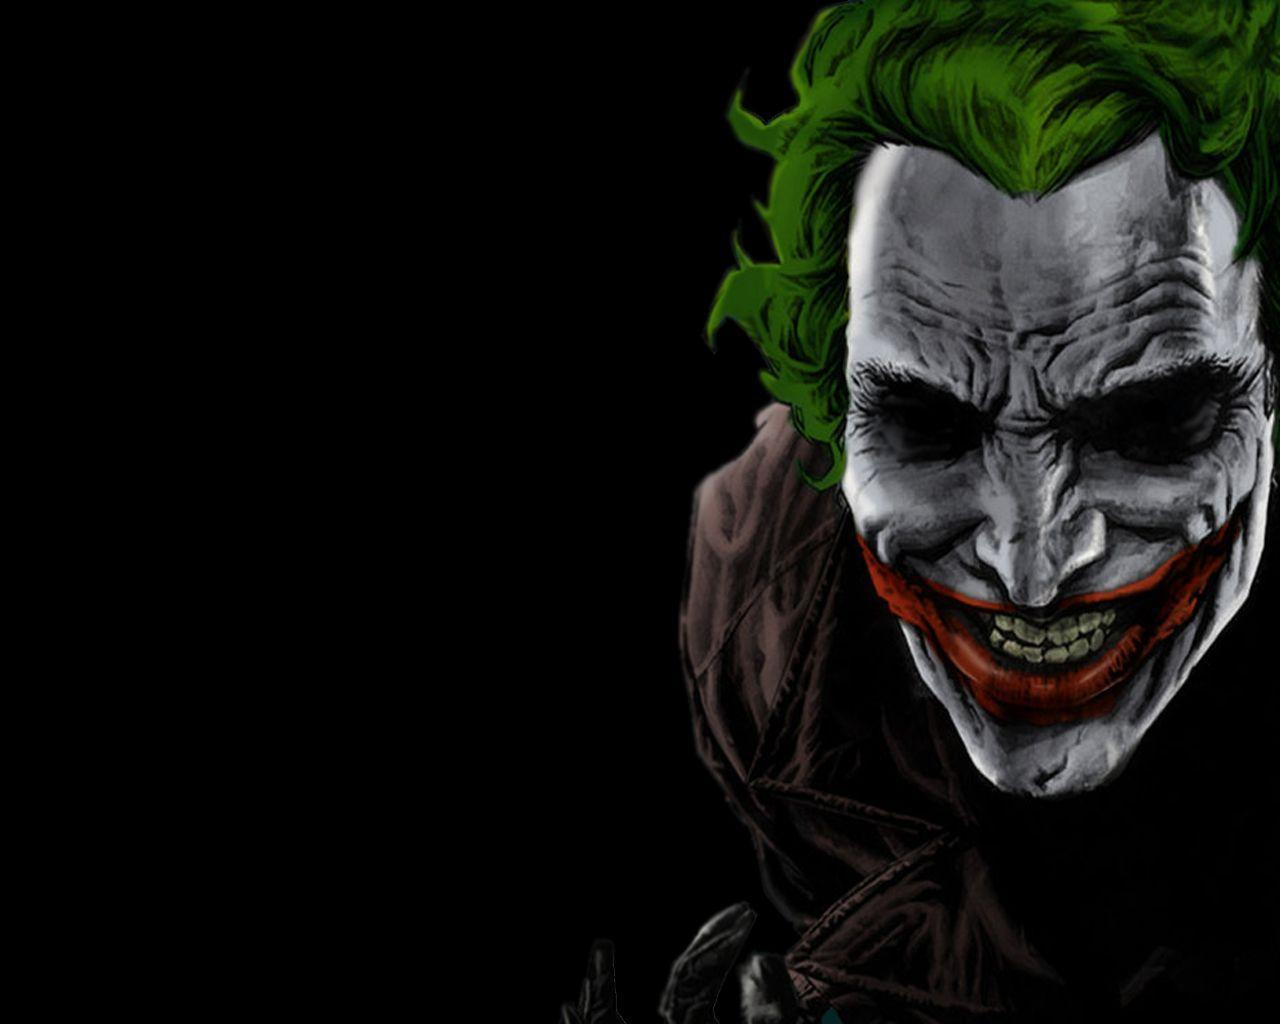 The Joker high resolution picture